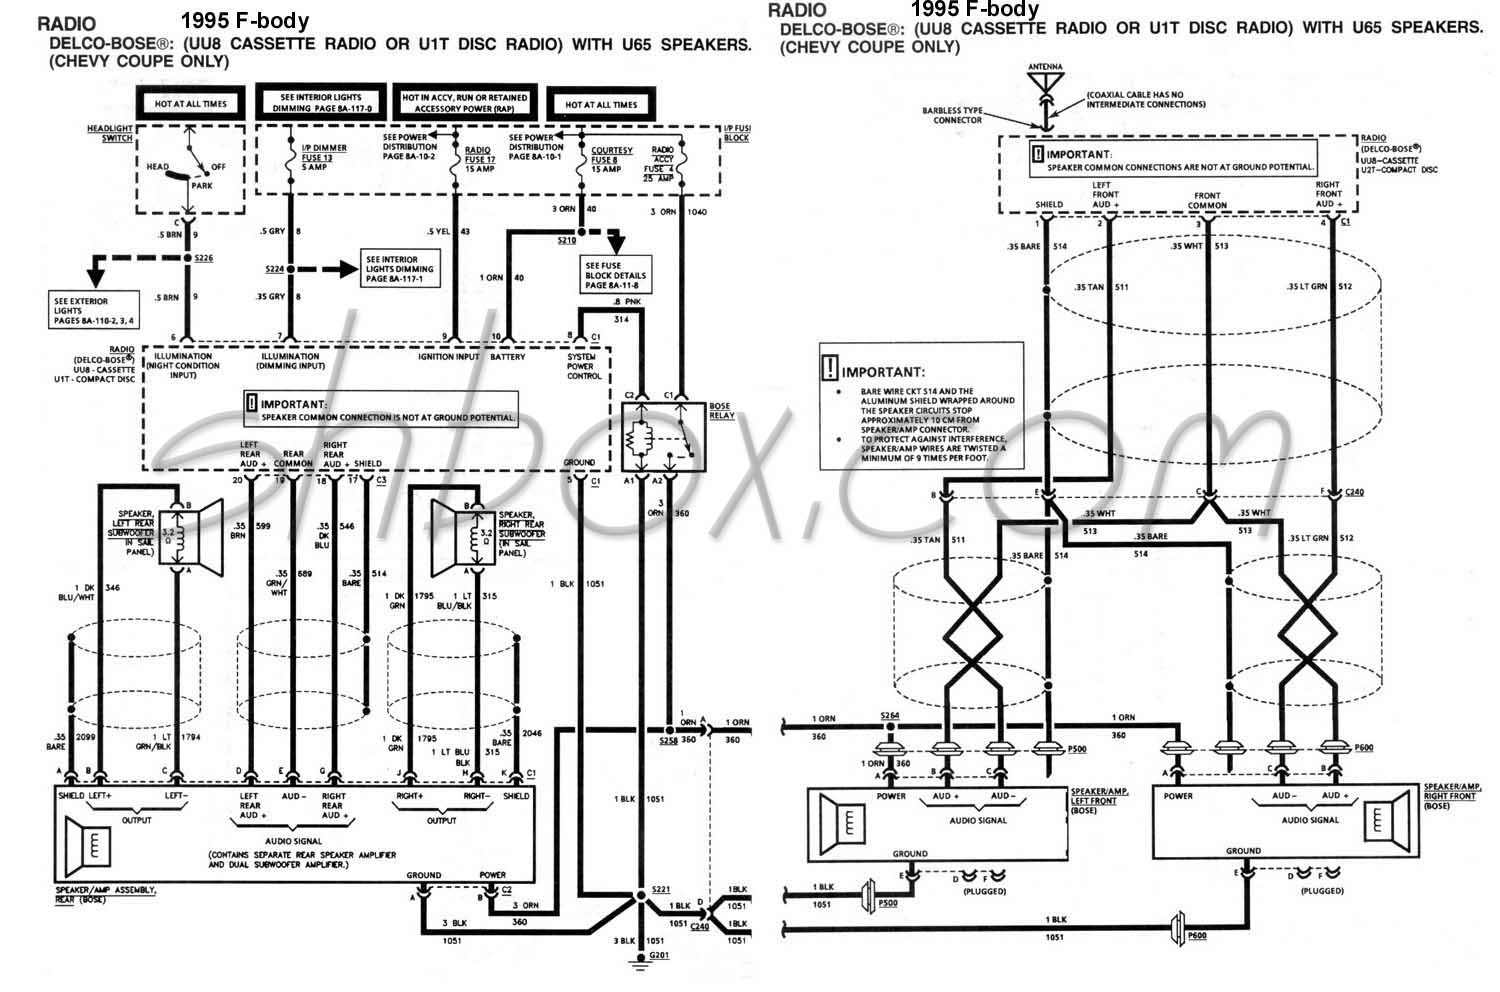 Delco Radio Wiring Diagram 1993 | Wiring Diagram - Delco Radio Wiring Diagram